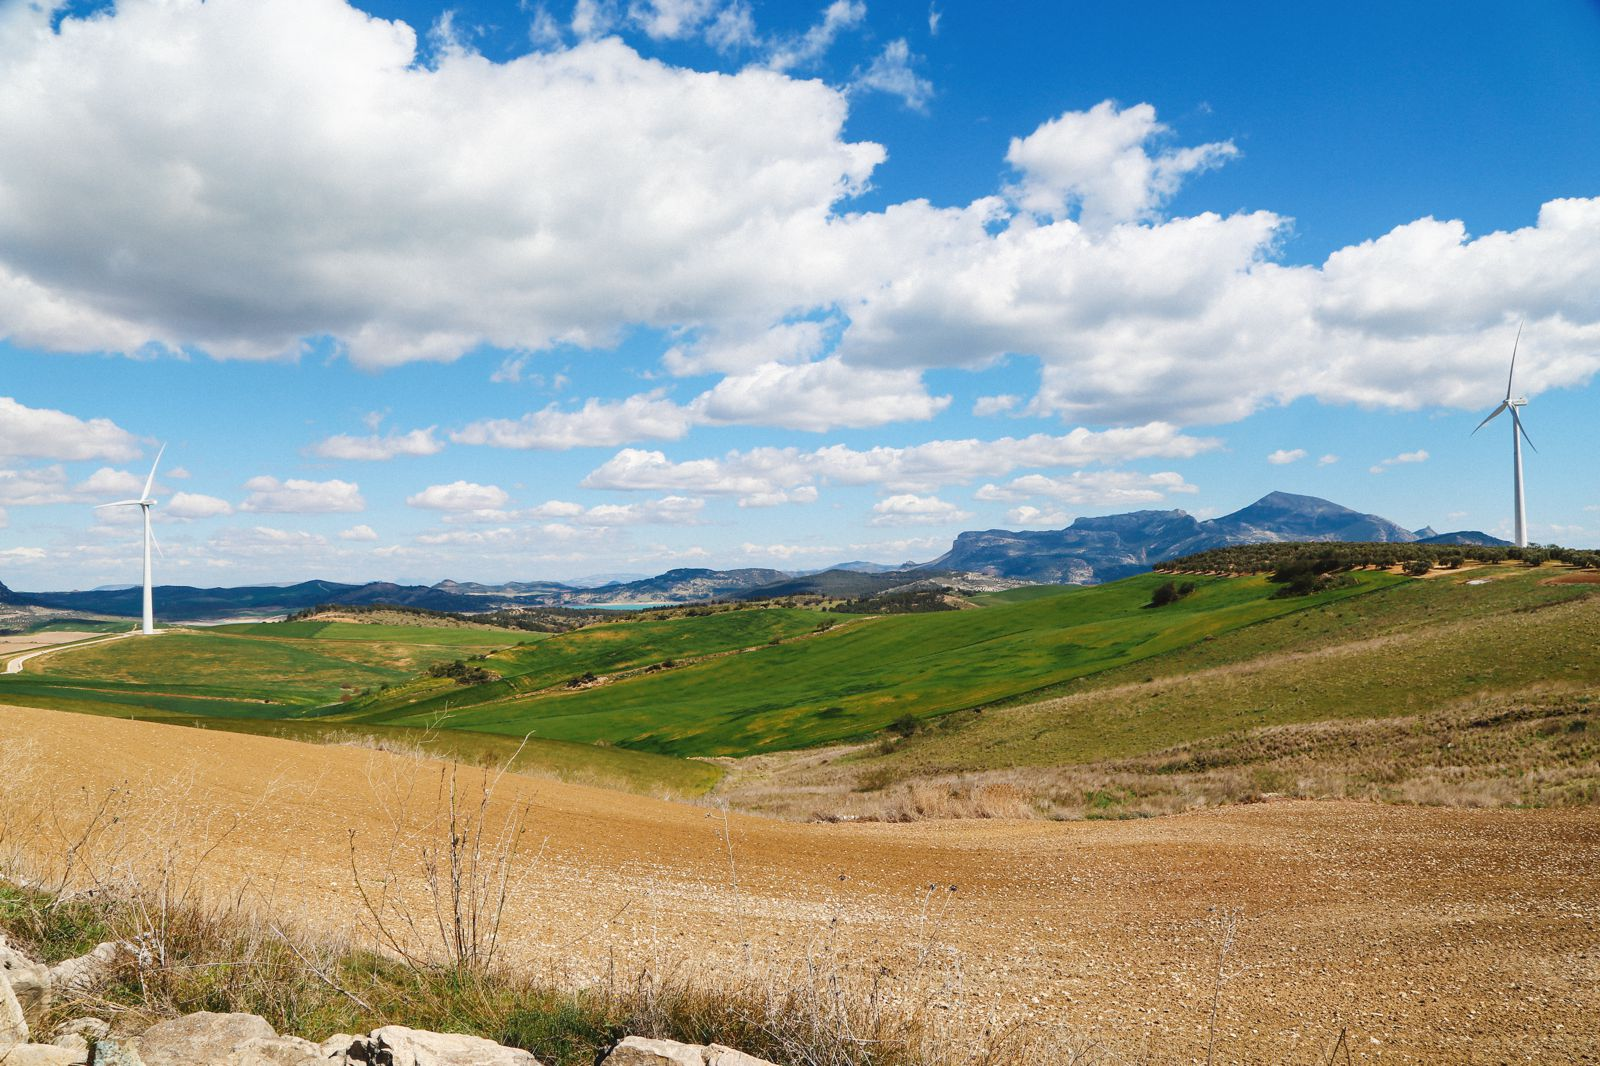 """A Visit To Ronda - The Spanish City 'Pulled Apart By The gods"""" (1)"""